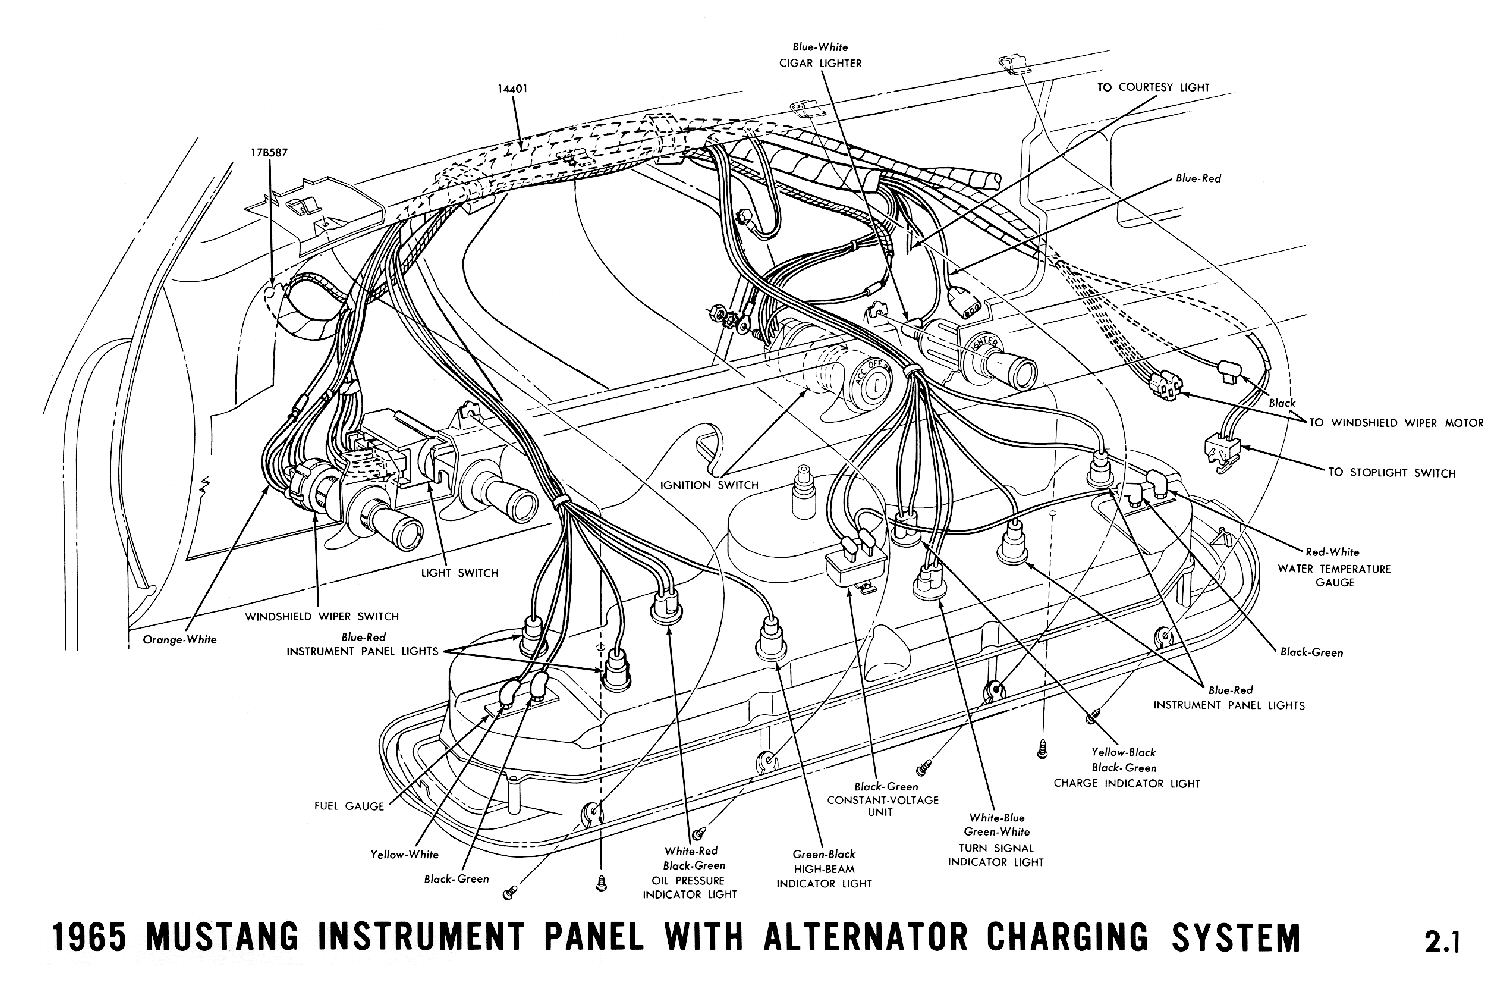 1965a 1965 mustang wiring diagrams average joe restoration 1966 mustang wiring harness at readyjetset.co